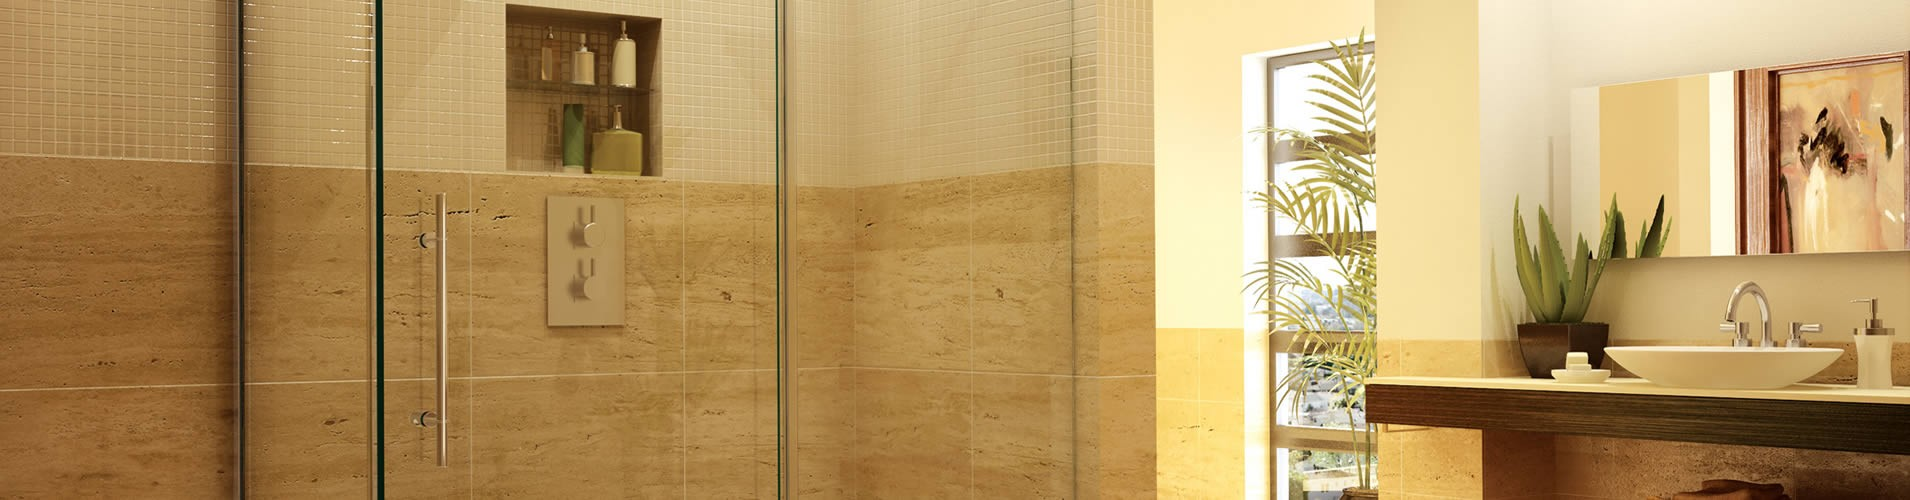 Atlanta frameless shower doors